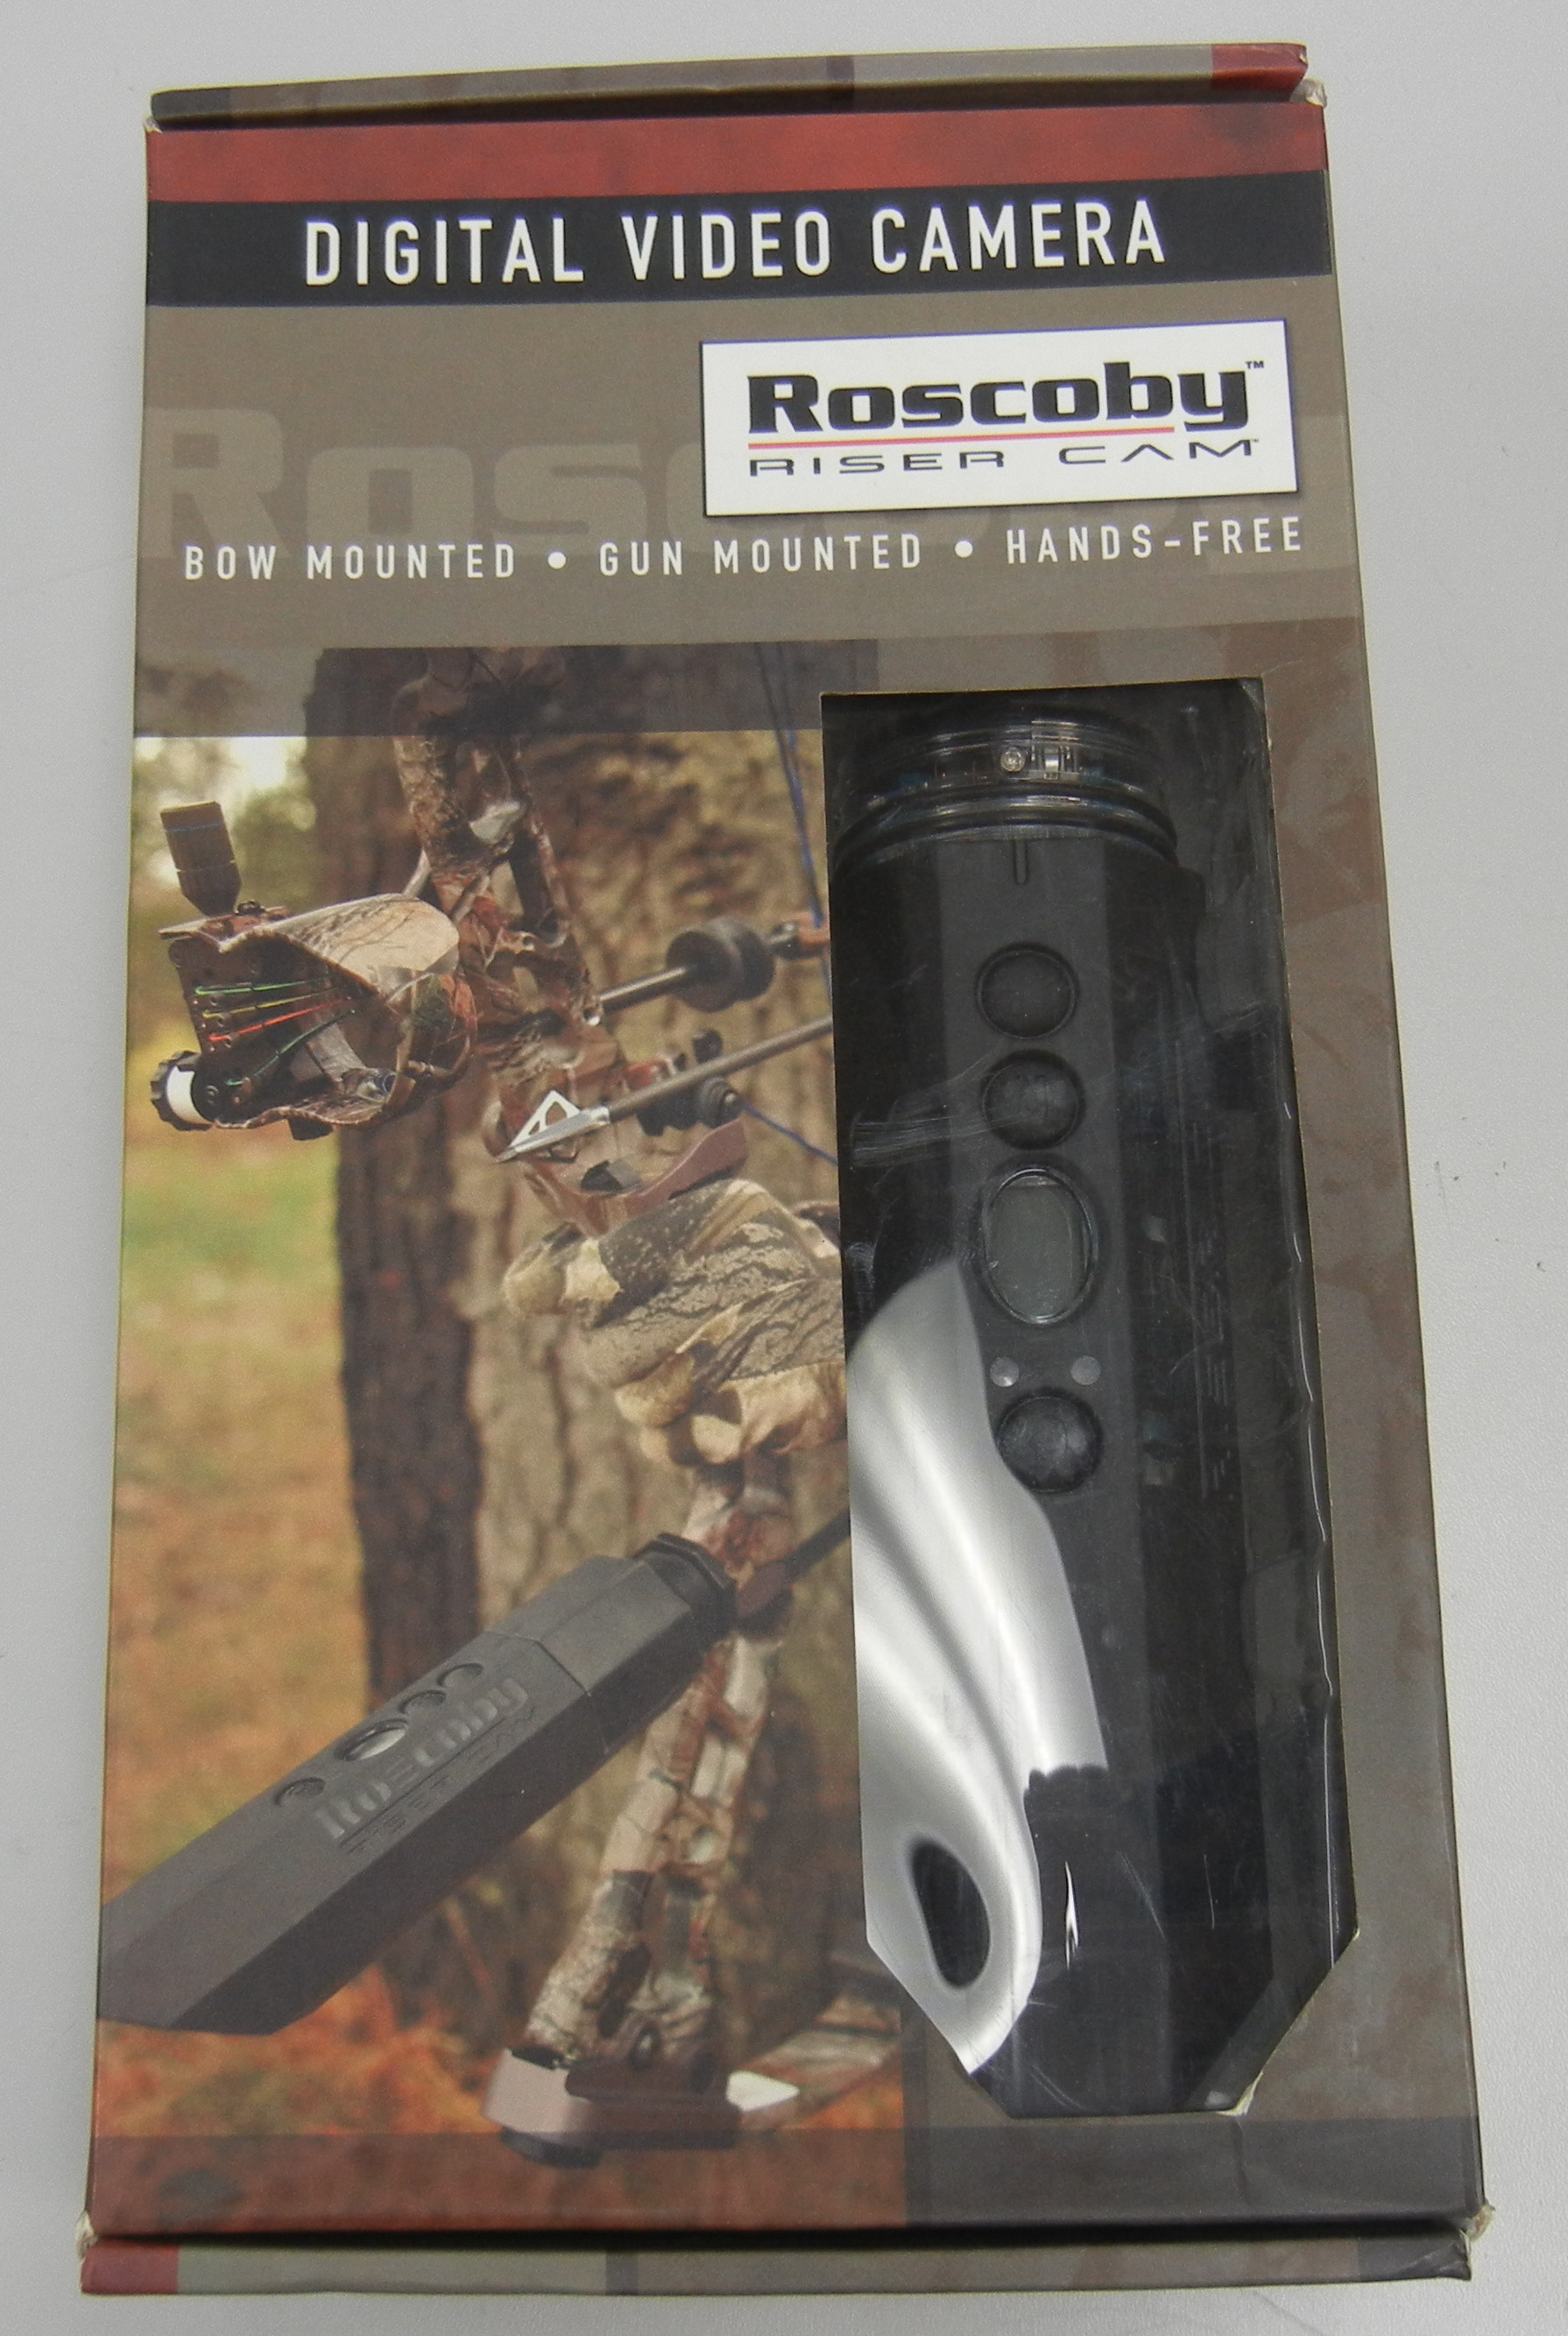 ROSCOBY - RISER - HUNTING CAMERA